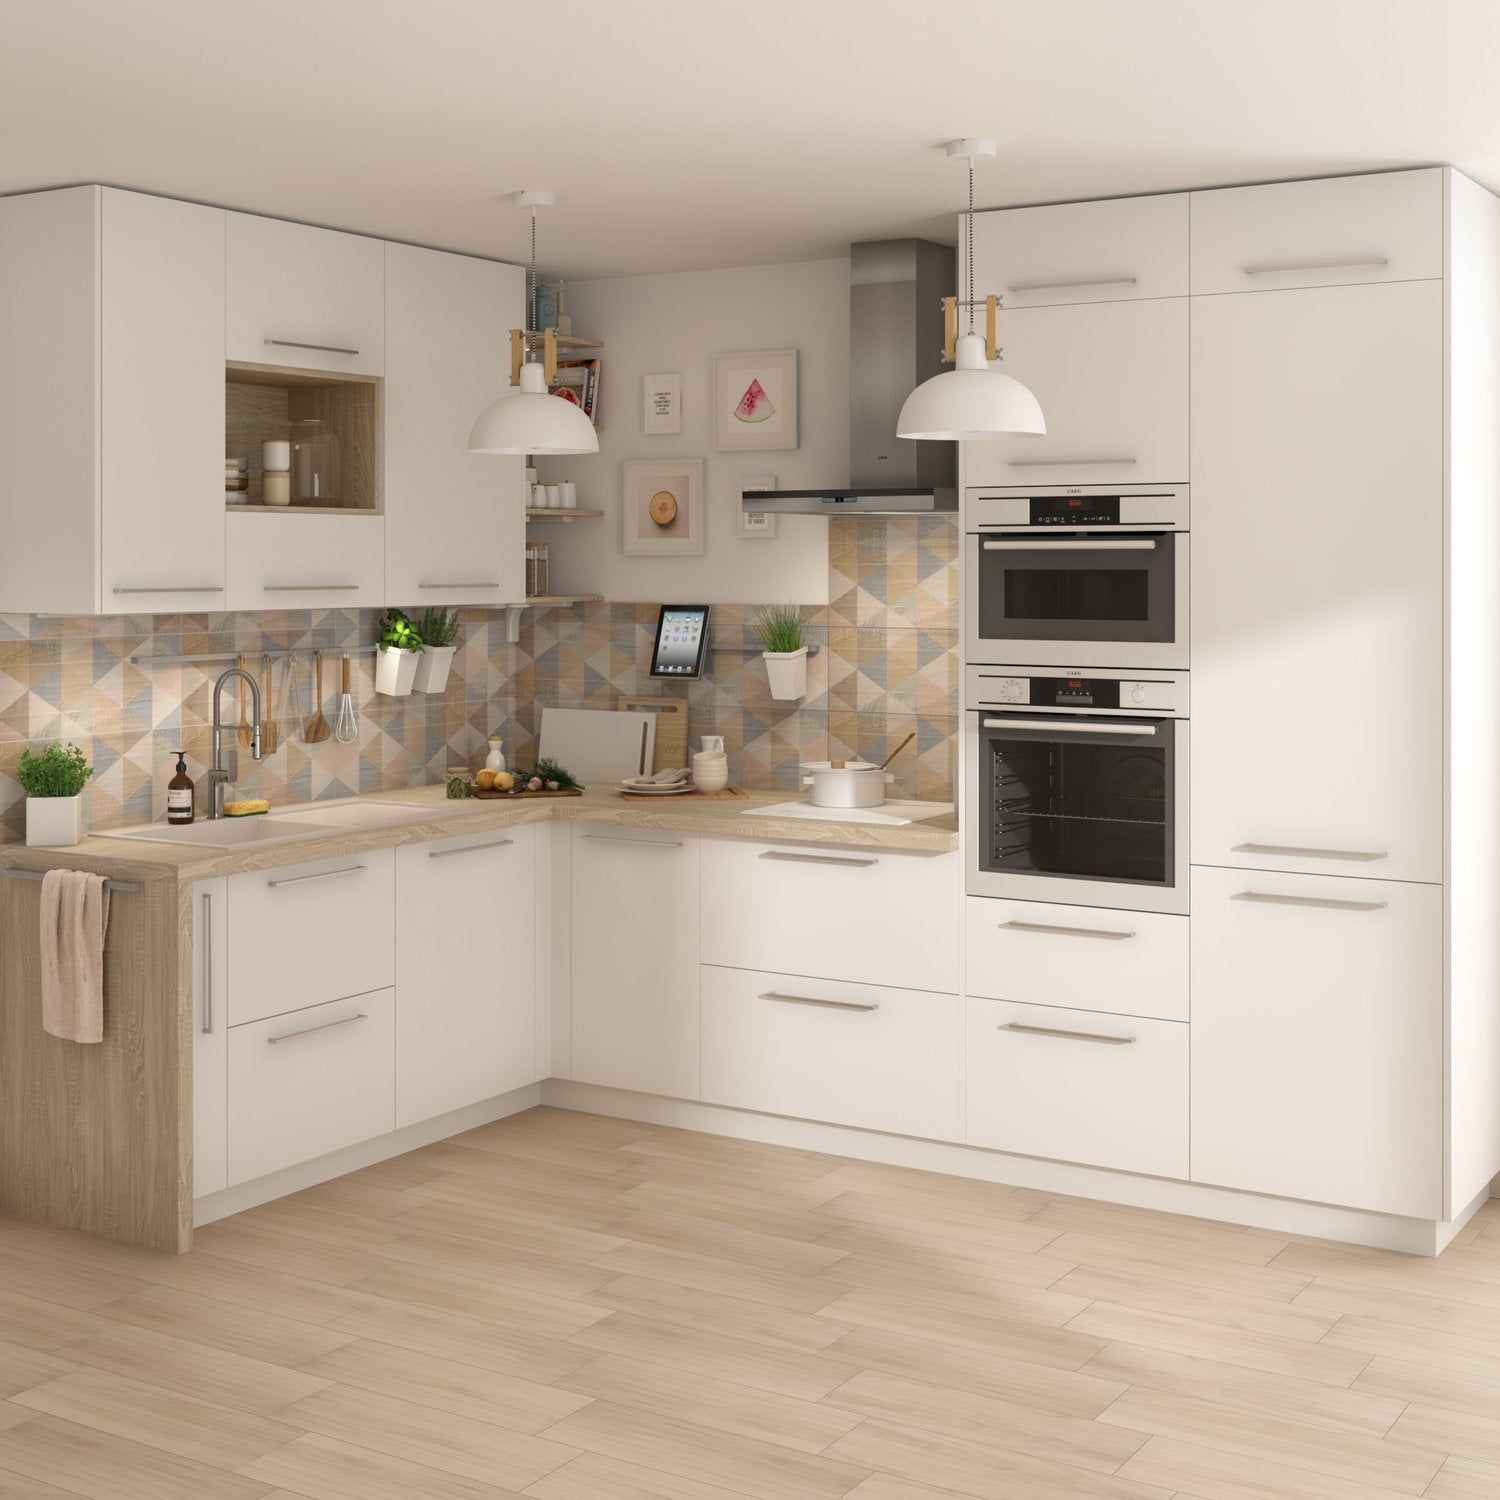 Cuisine Blanche Indemodable Et Lumineuse Leroy Merlin En 2020 Meuble Cuisine Meuble Bas Cuisine Cuisine Moderne Blanche